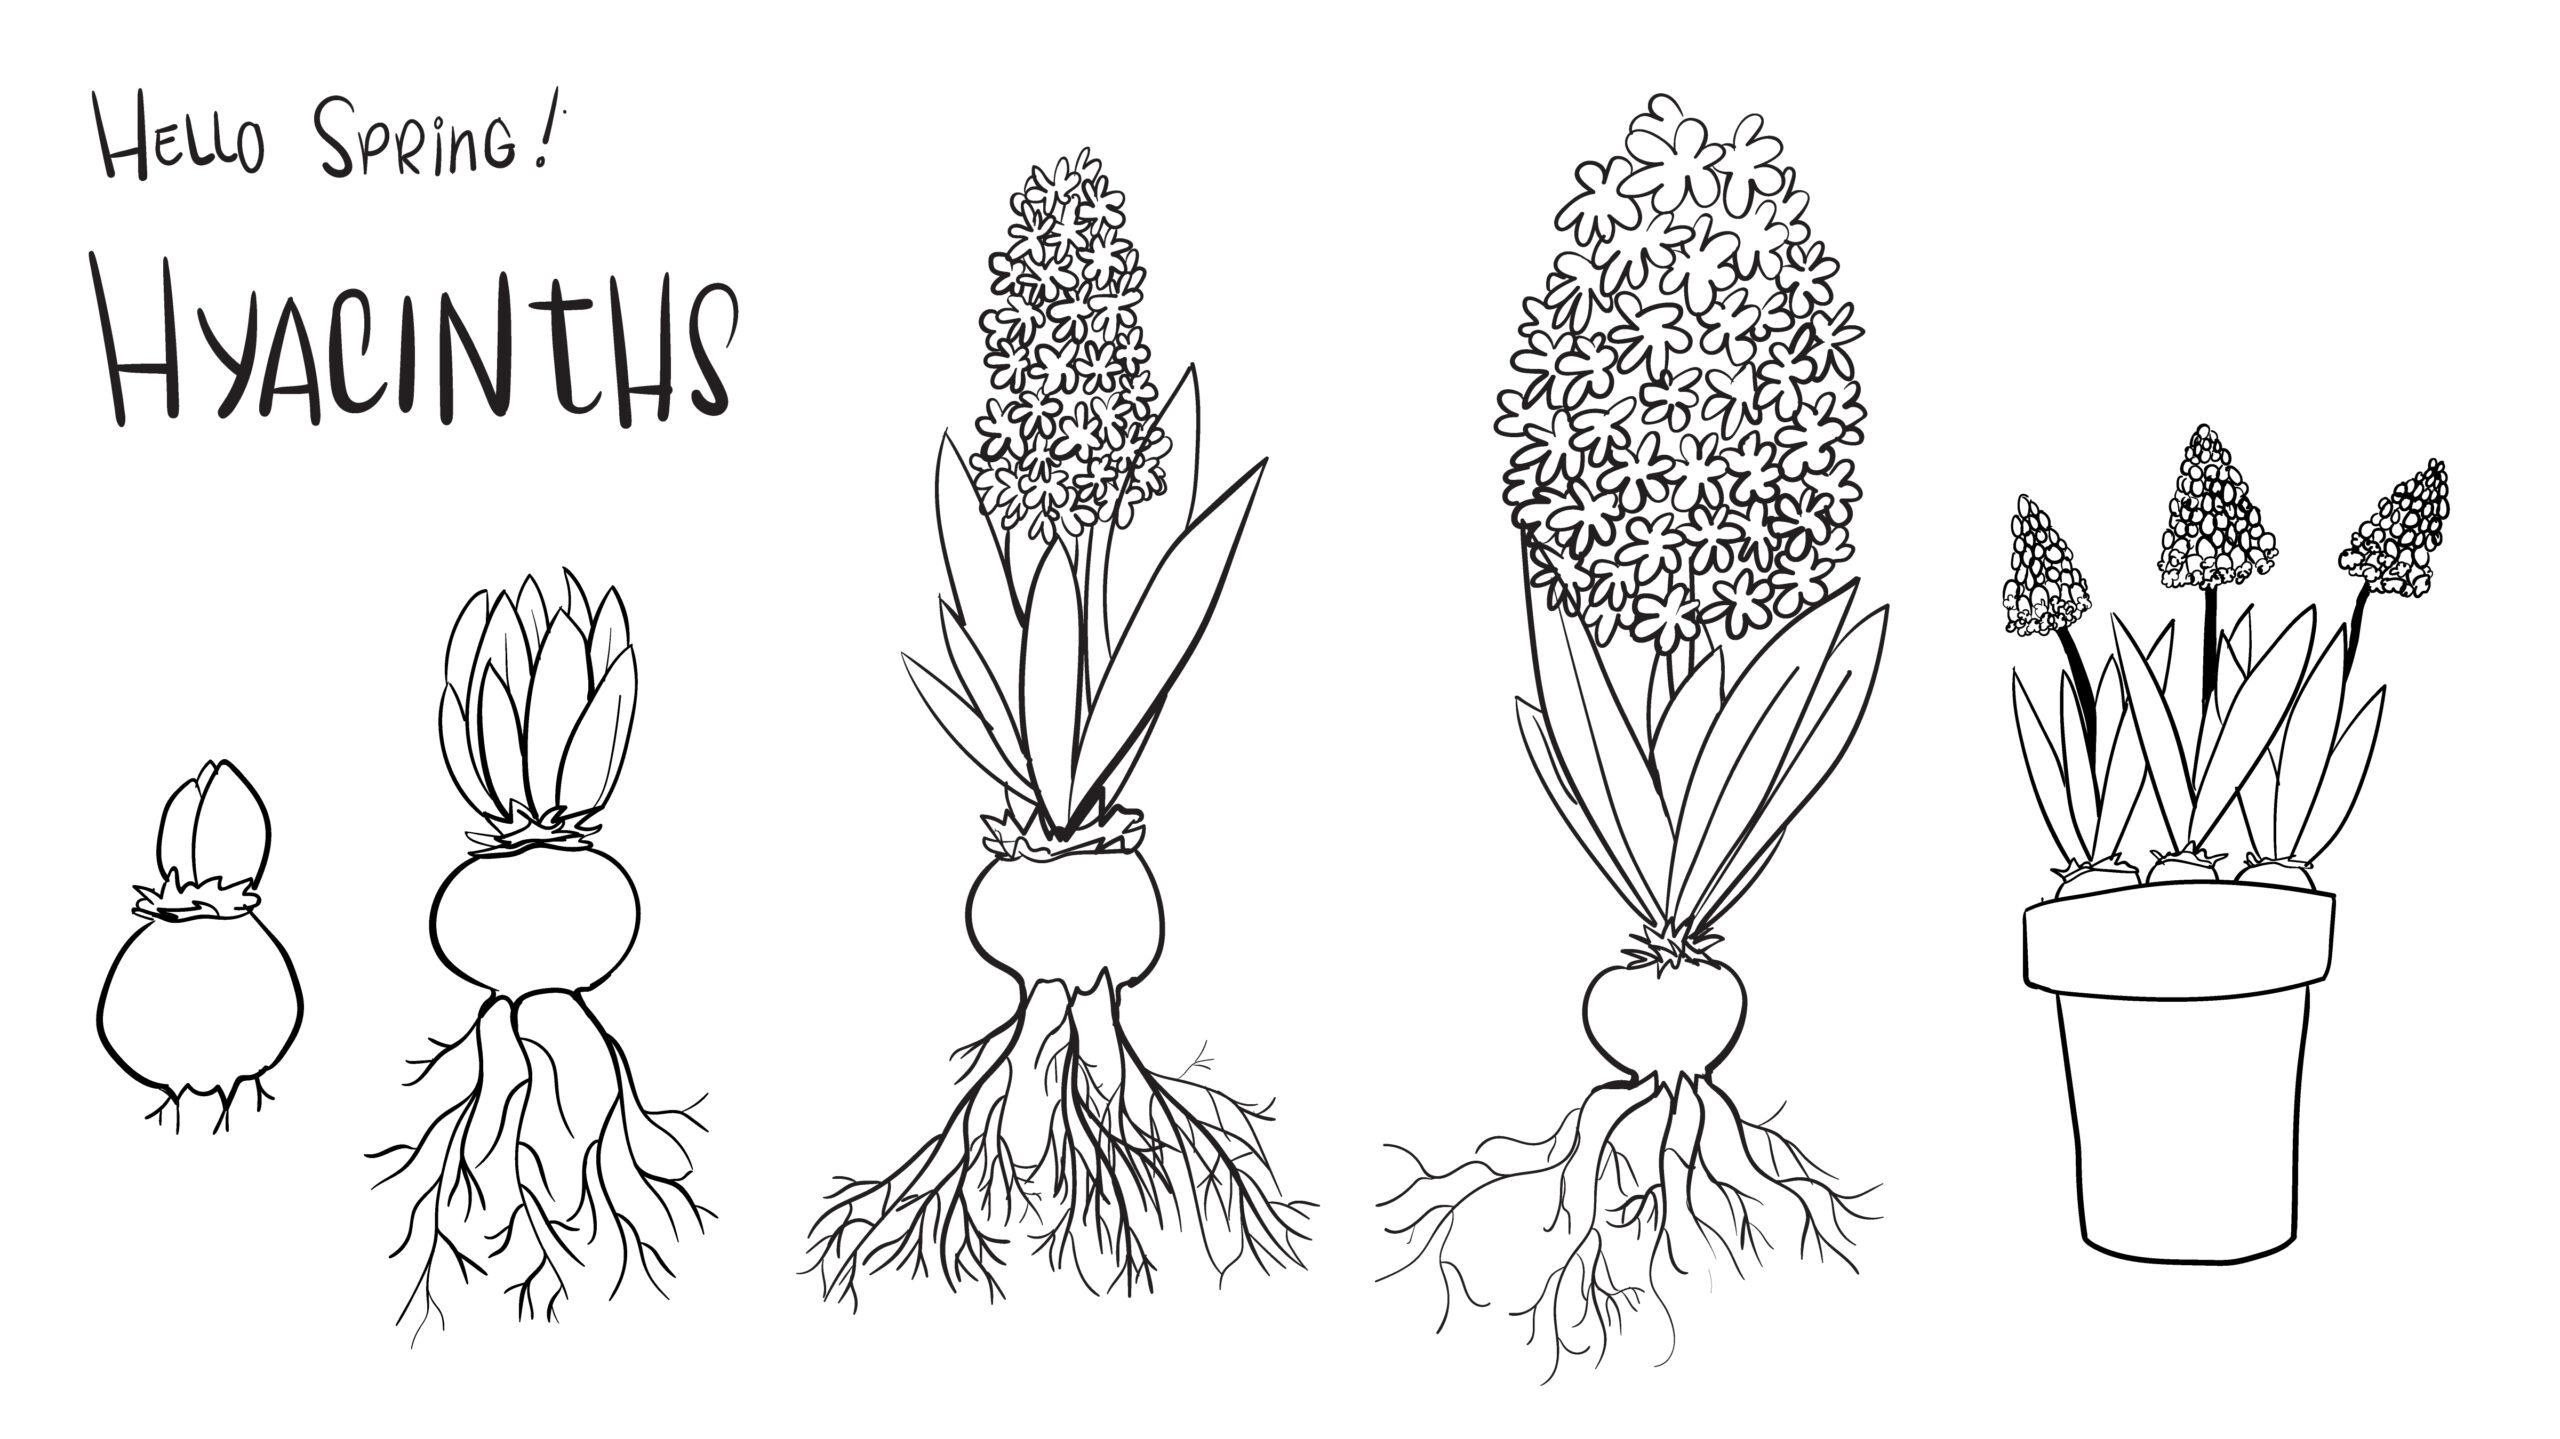 example of stock illustration: a hand drawn illustration of the growth of a hyacinth bulb